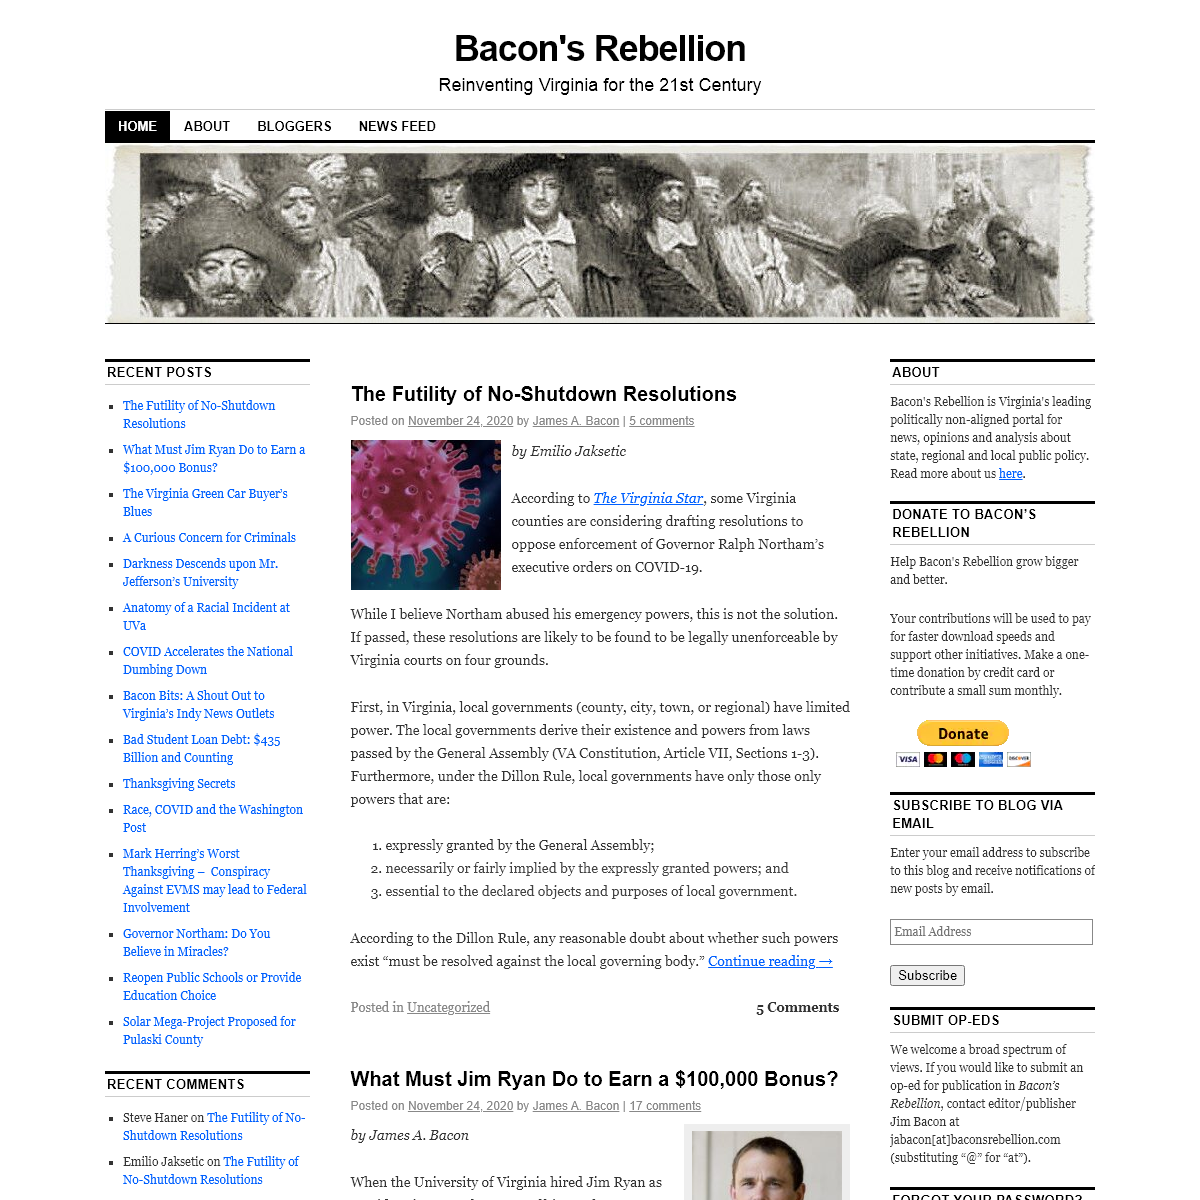 Bacon`s Rebellion - Reinventing Virginia for the 21st Century